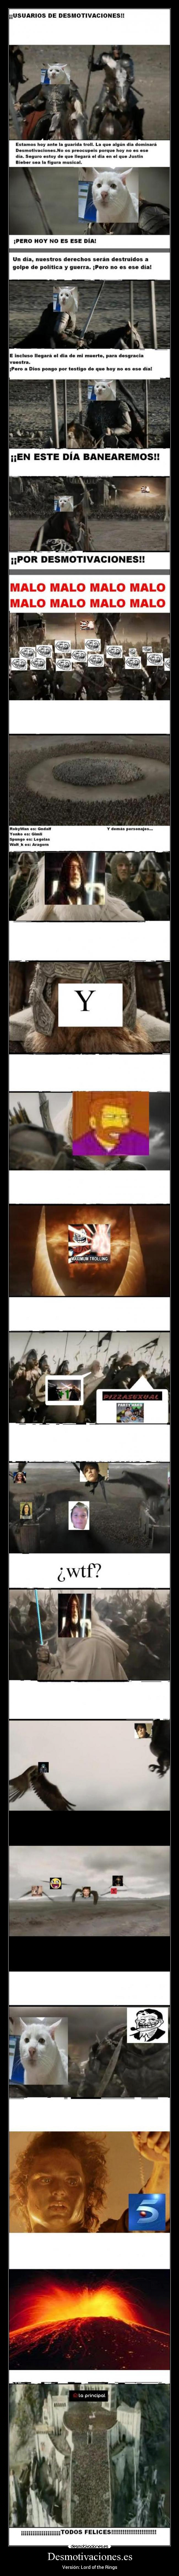 Desmotivaciones.es - Versión: Lord of the Rings